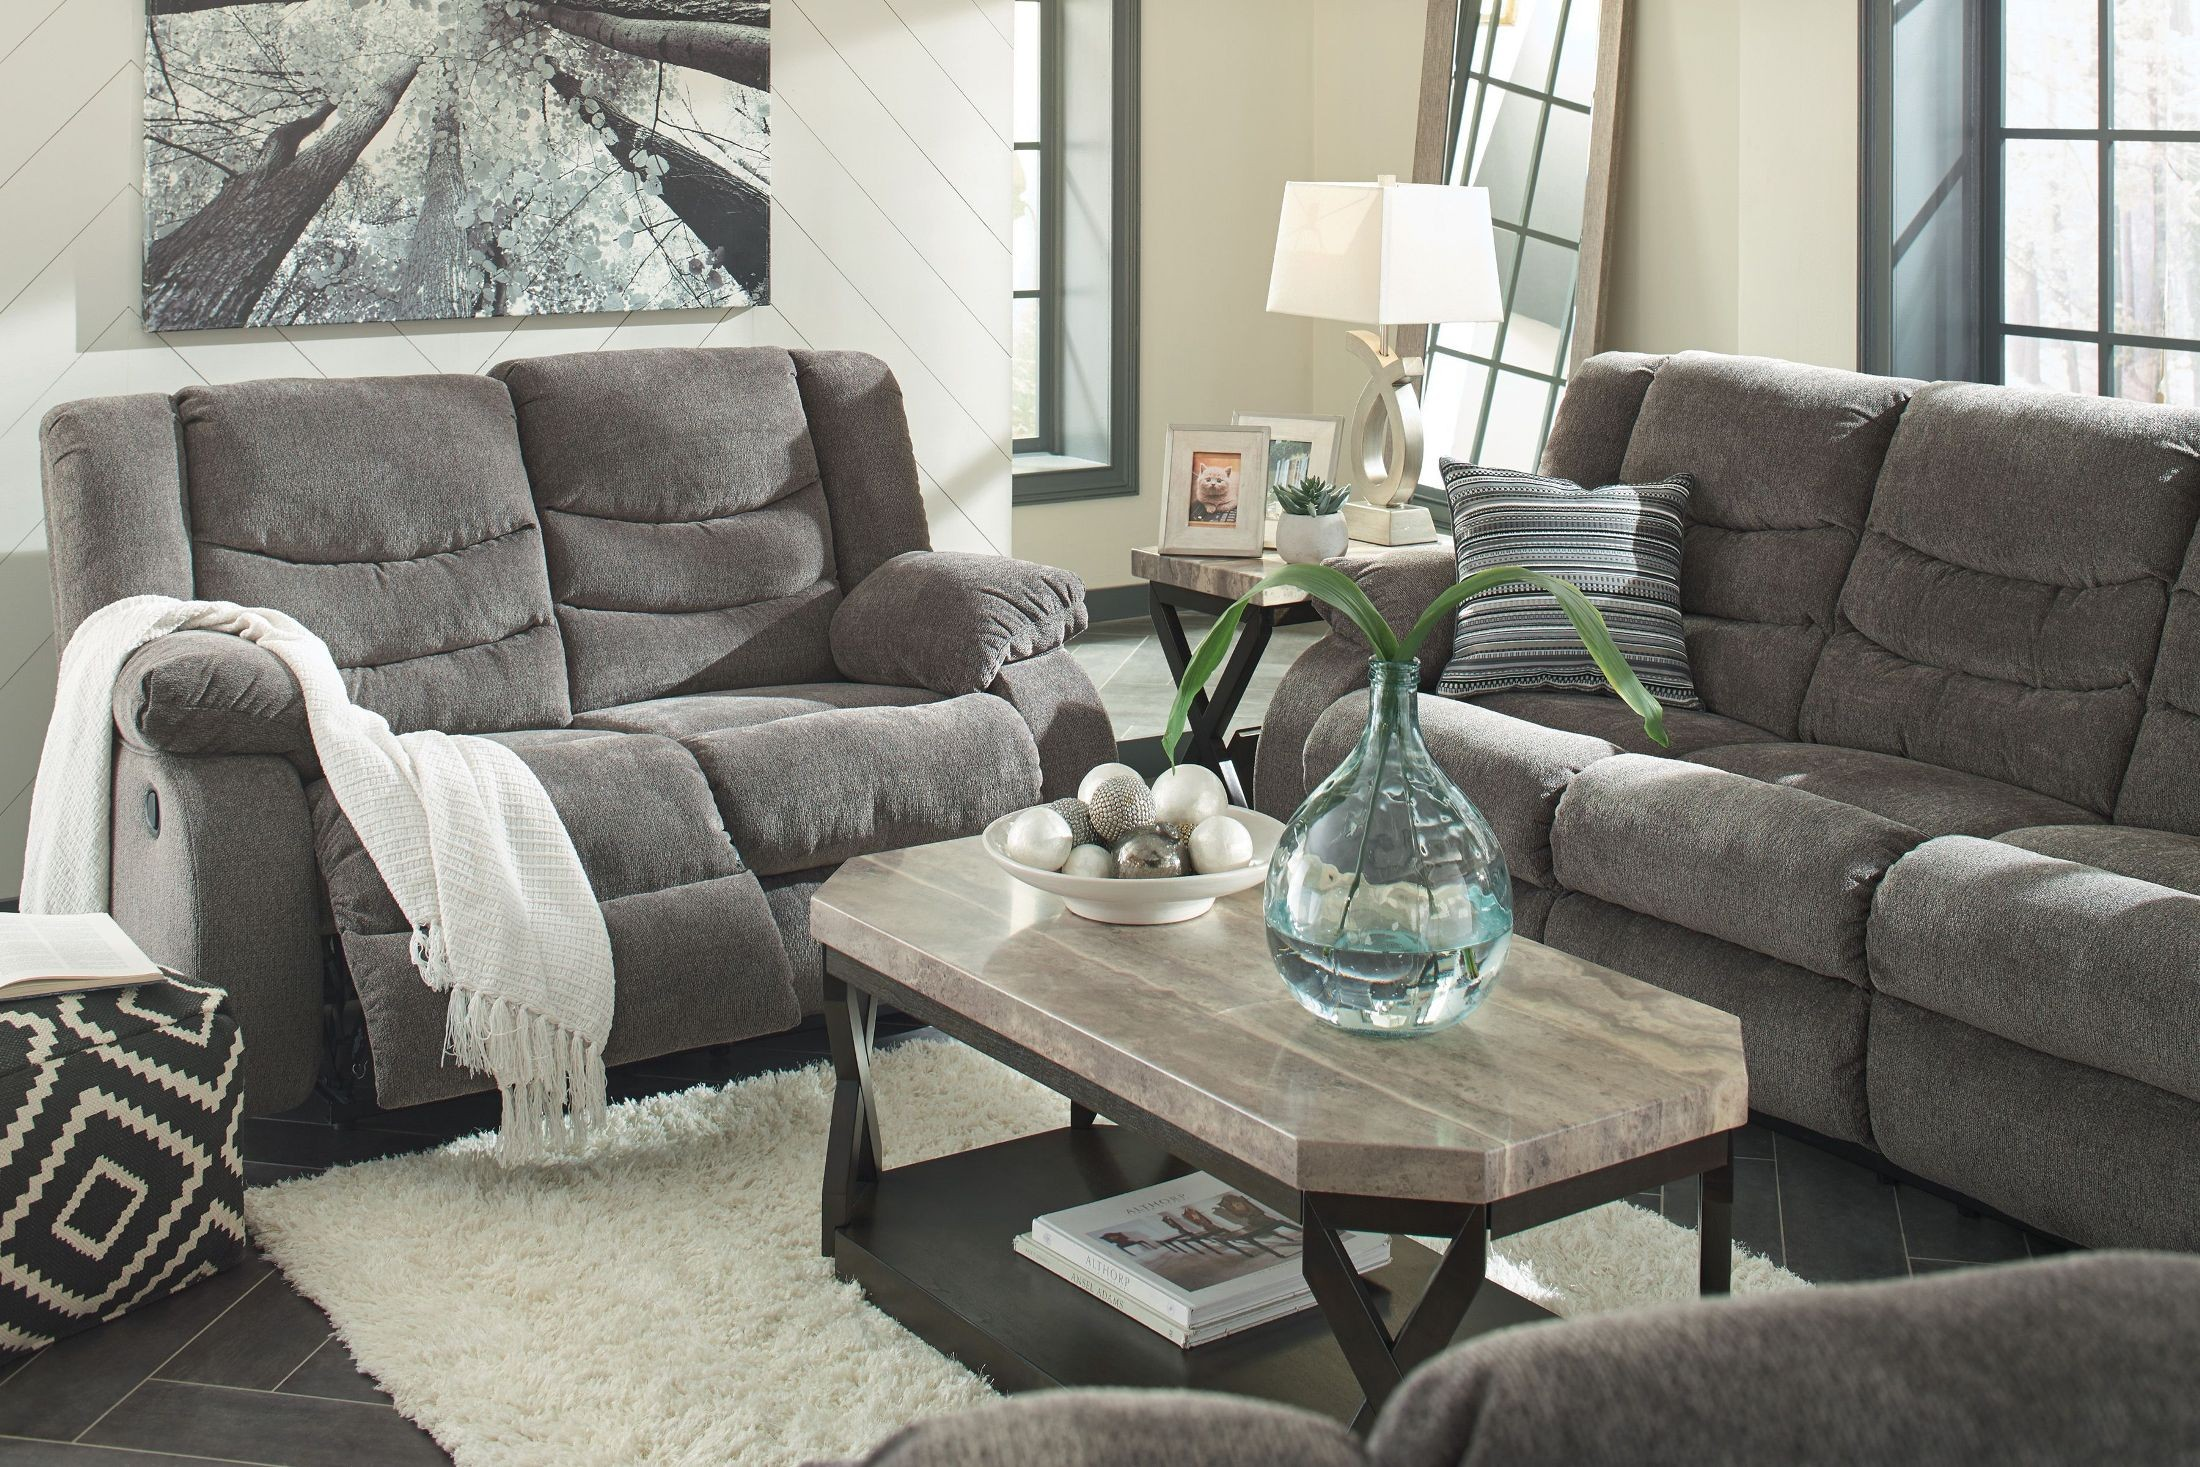 Tulen Gray Reclining Living Room Set from Ashley | Coleman Furniture